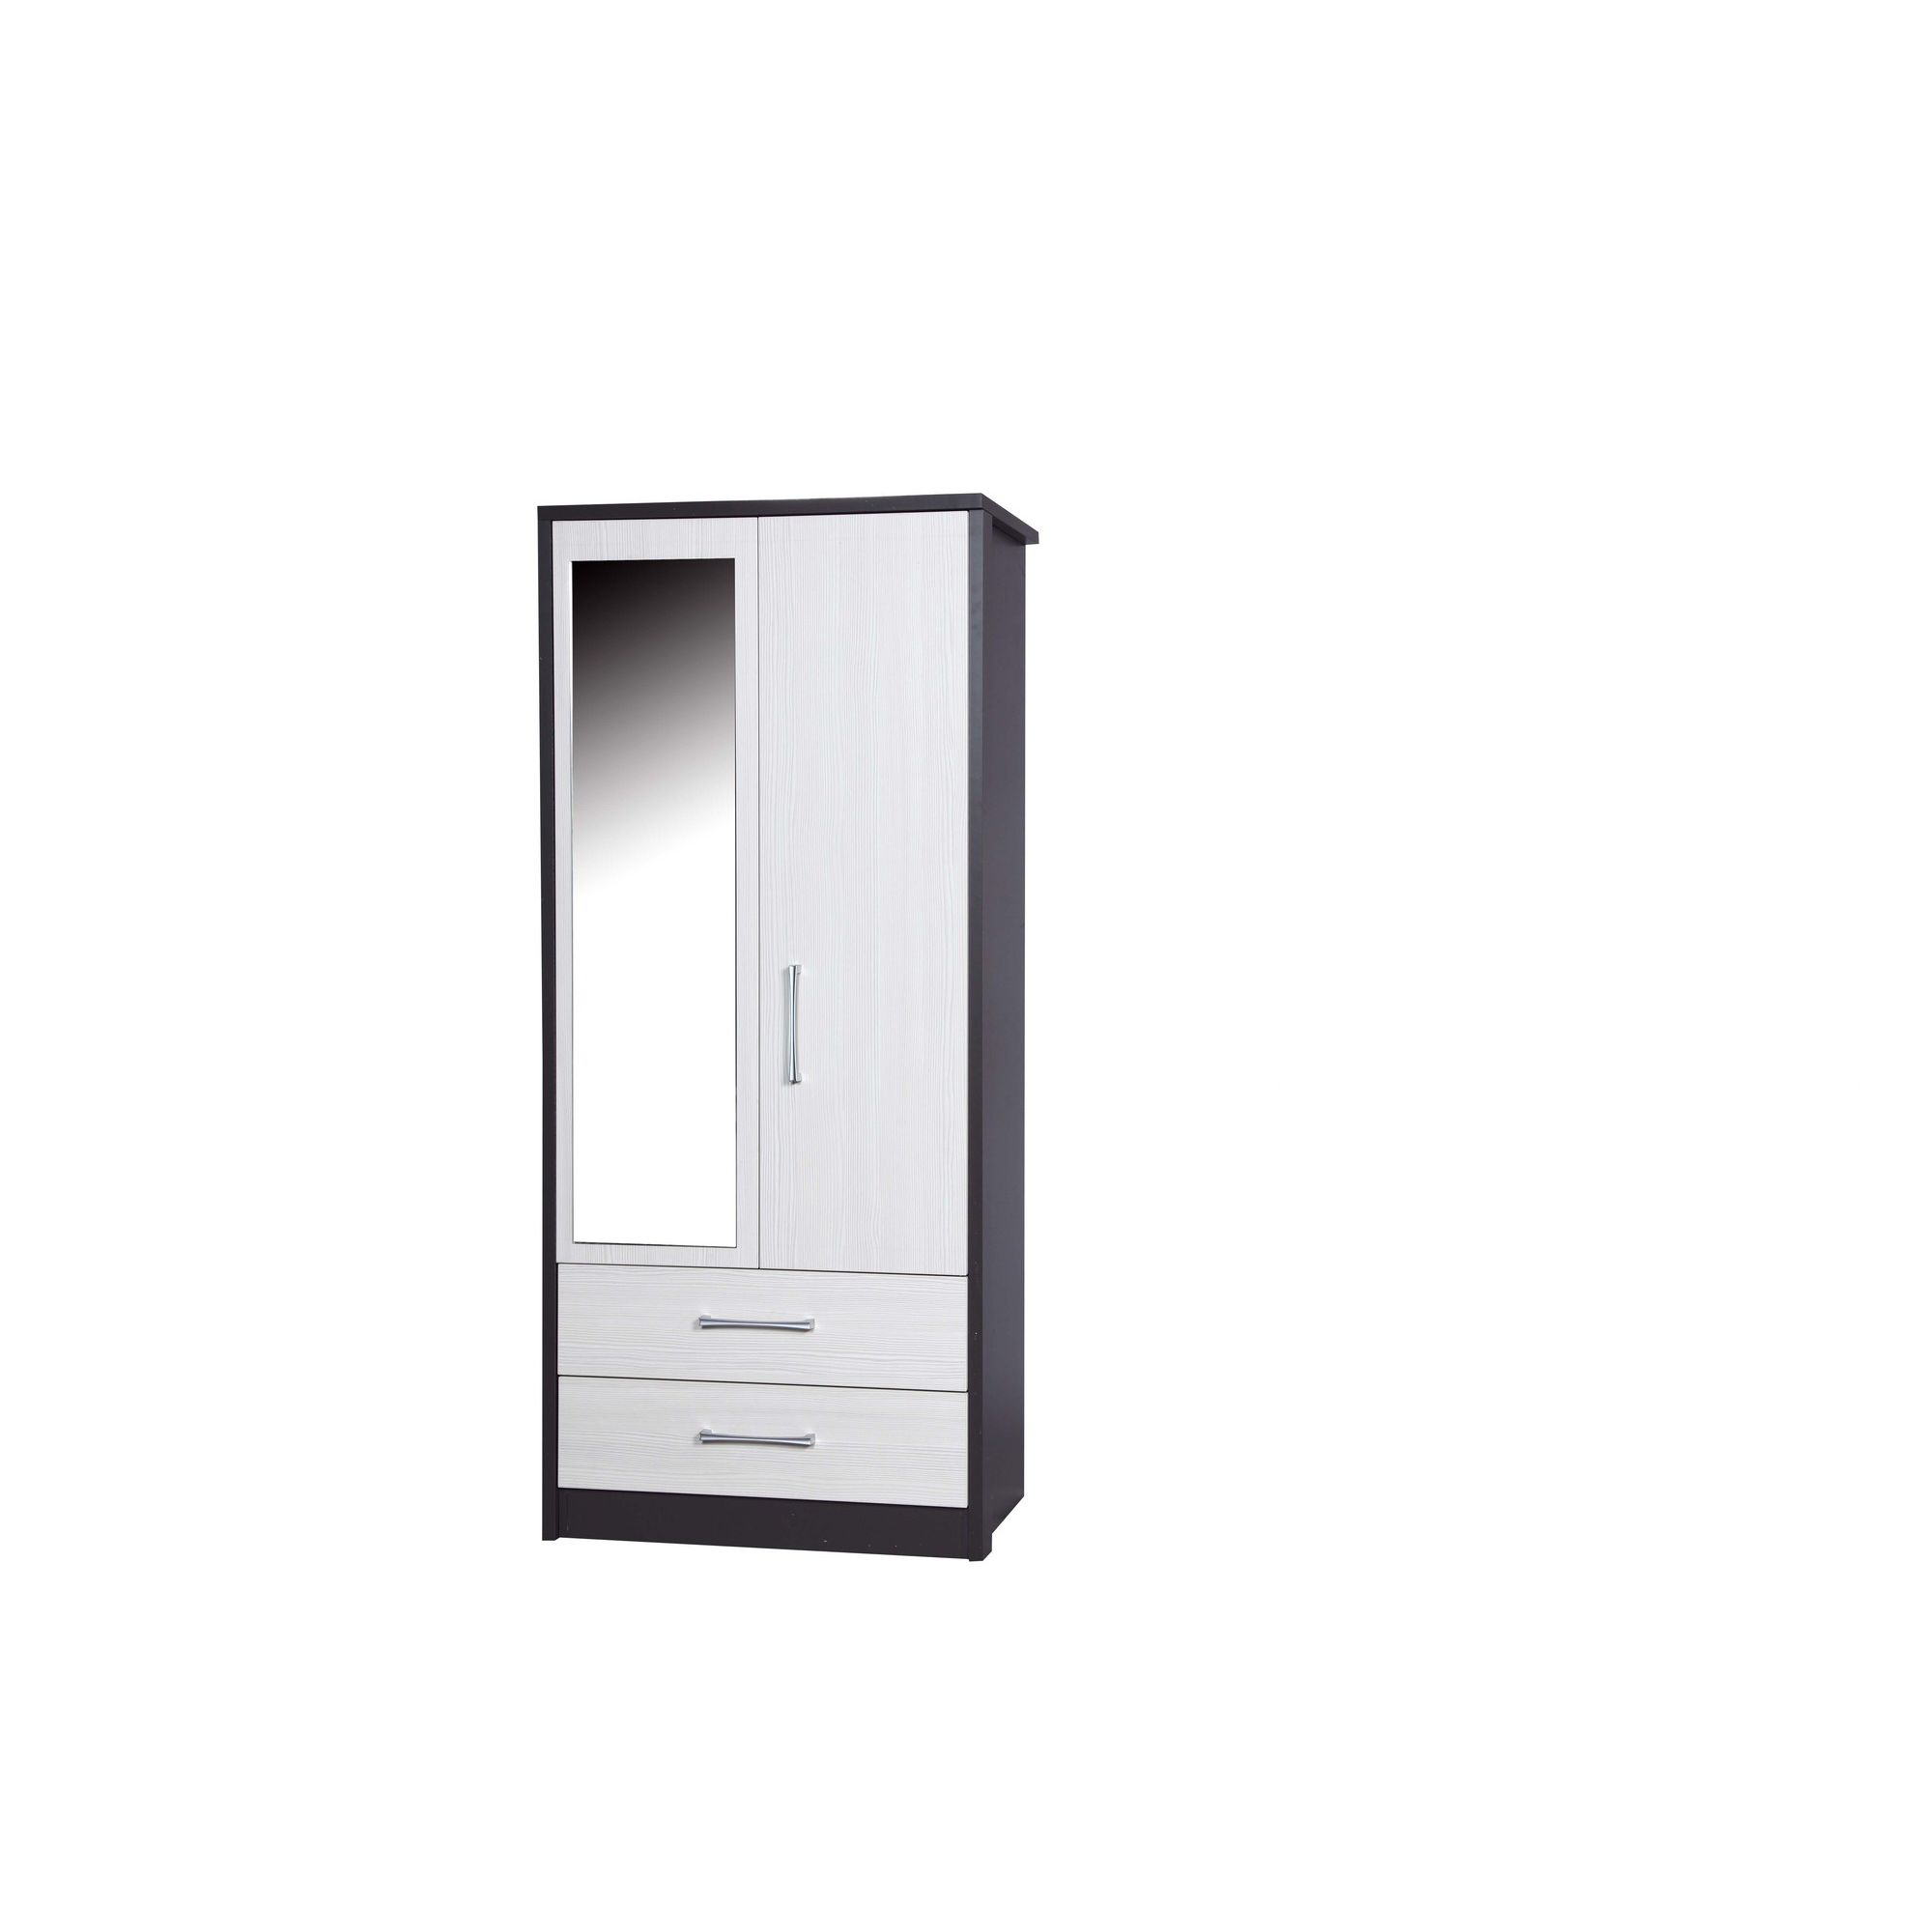 Alto Furniture Avola 2 Drawer Combi Wardrobe with Mirror - Grey Carcass With White Avola at Tesco Direct